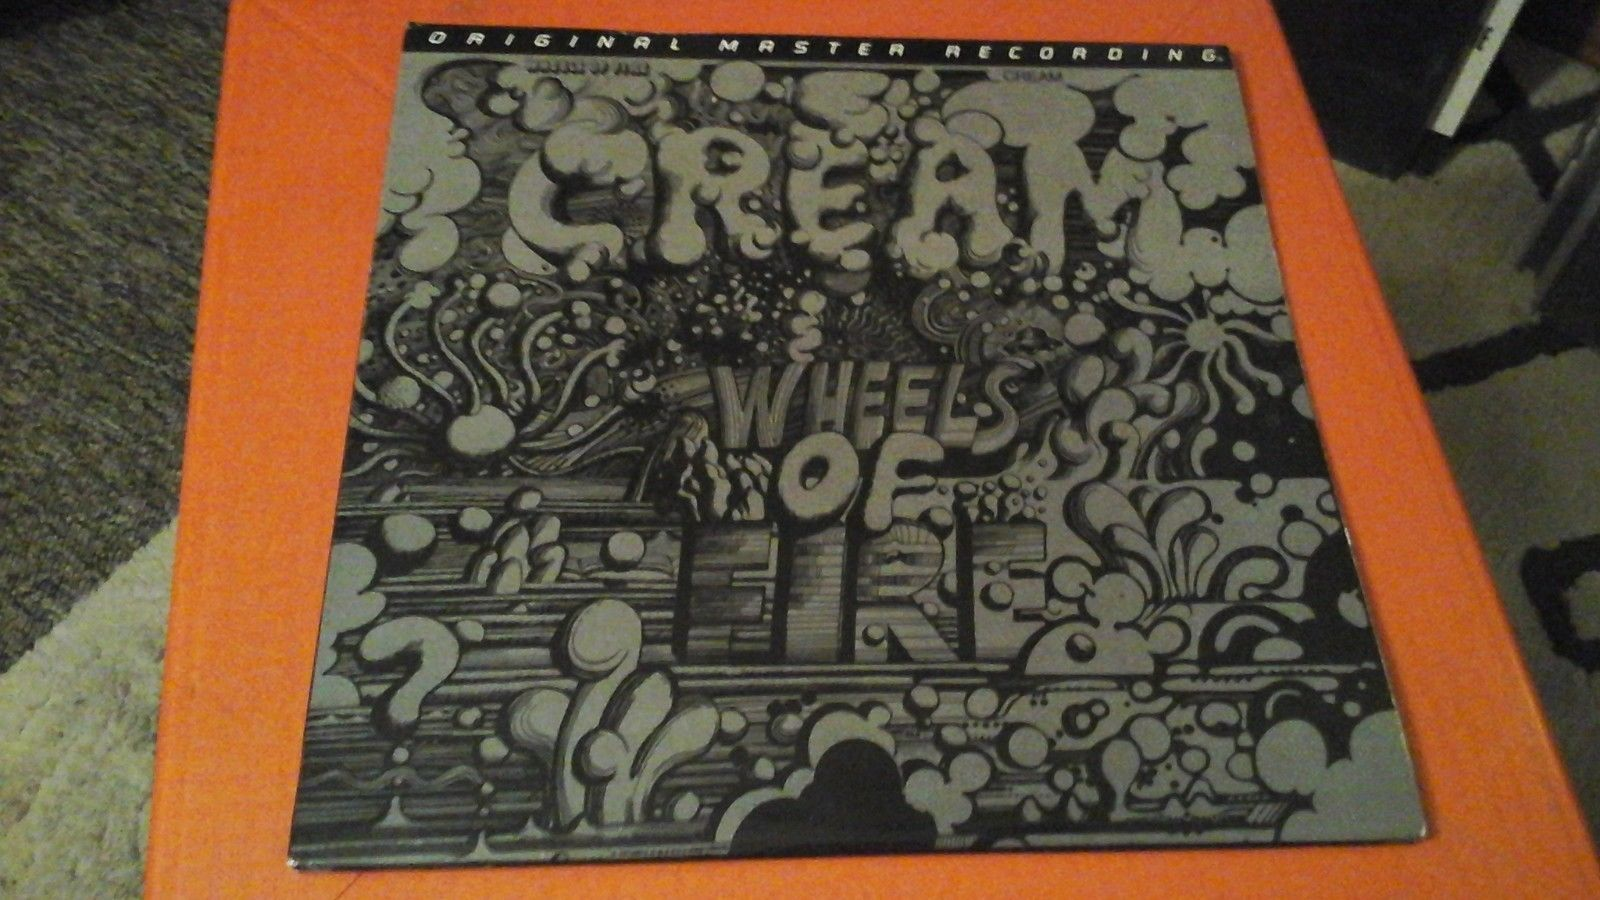 Cream Wheels of Fire MFSL SCARCE Audiophile DOUBLE LP NEAR MINT Gatefold https://t.co/RbzqKSoFMI https://t.co/xazsObCbrG